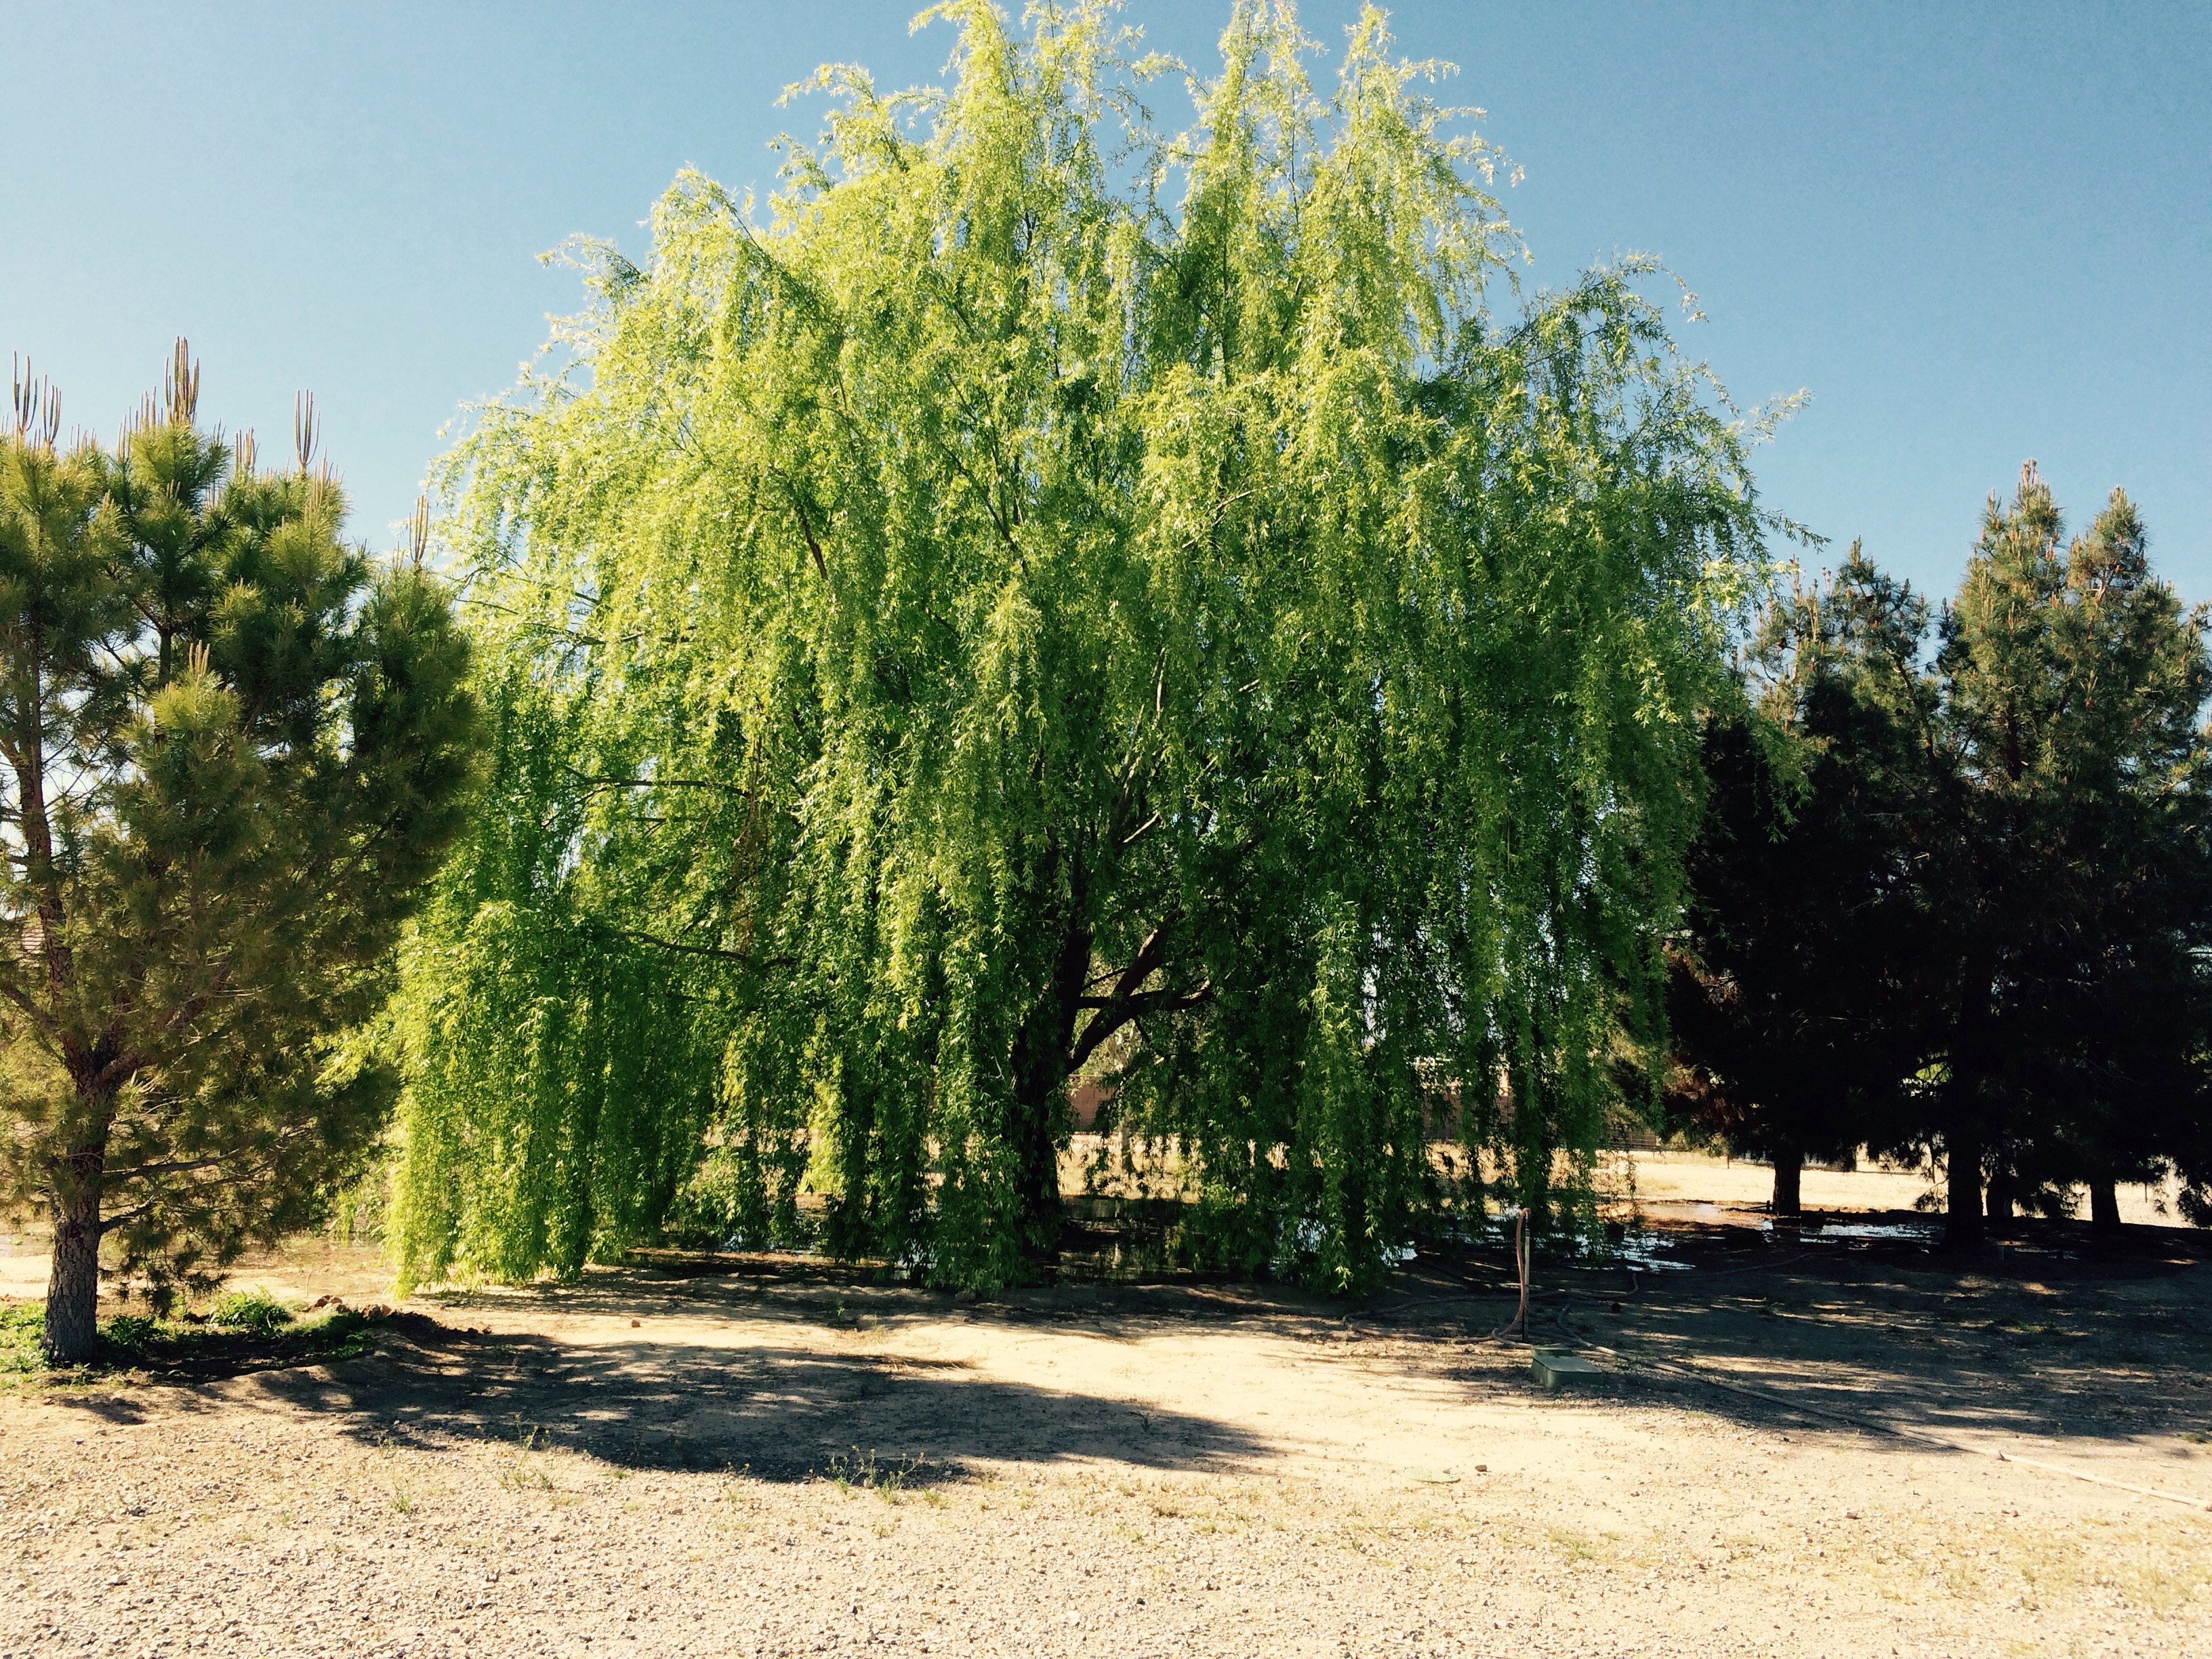 Us old time desert farmers say wait to plant gardens until the mesquit trees star to get thier leaves they have leaves and my farm favorite weeping willow tree is in its full glory